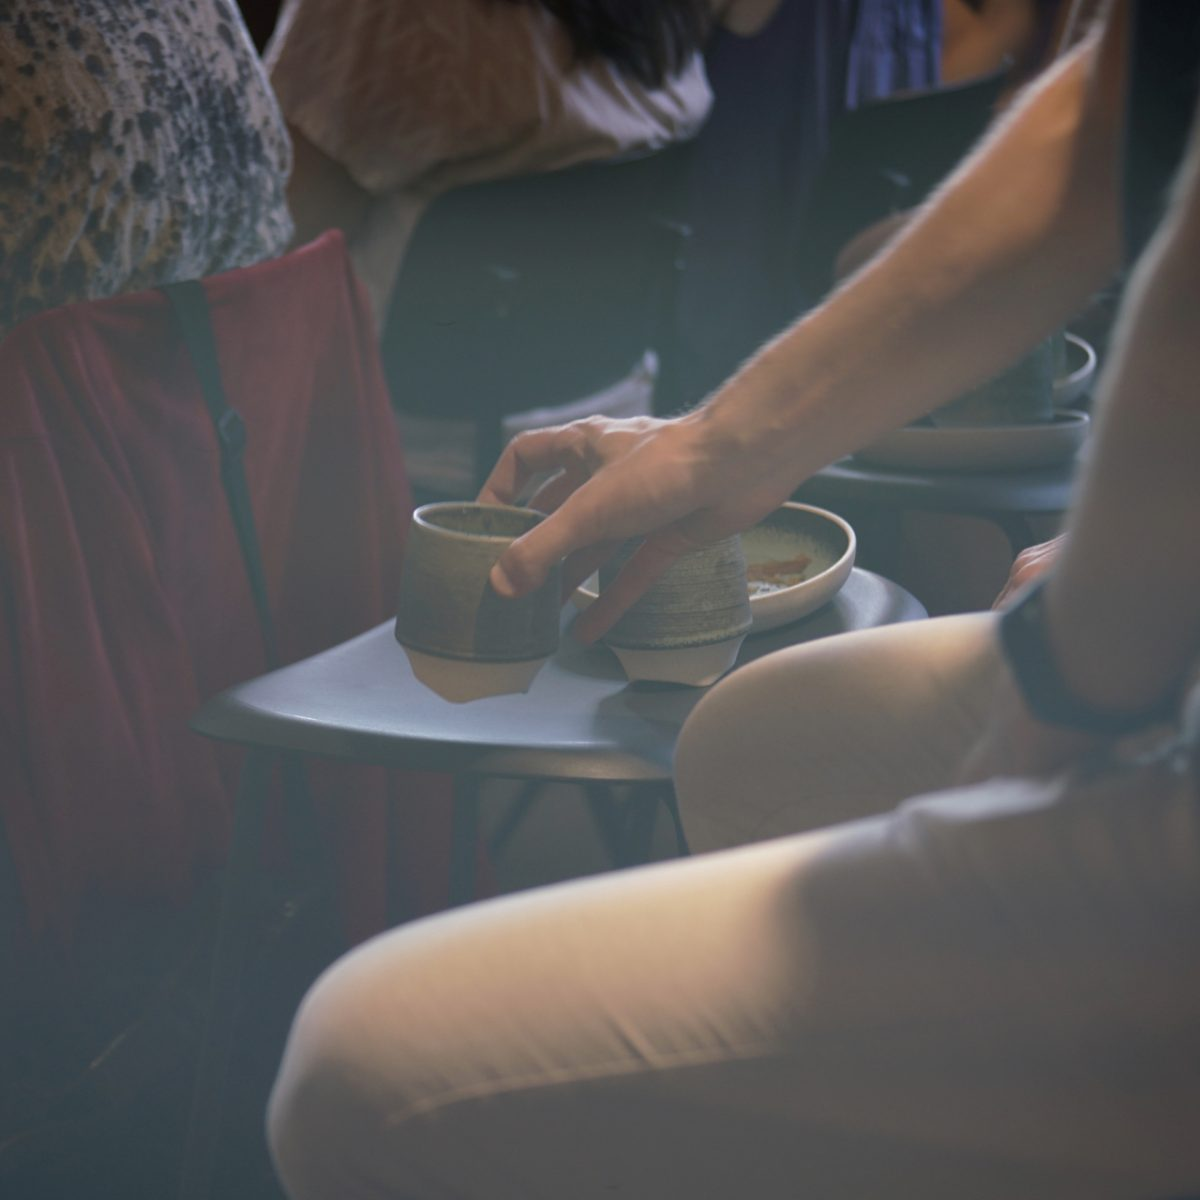 Event photography for Instagram: Coffee - an important part of a Creative Morning - shot with Lomography Neptune